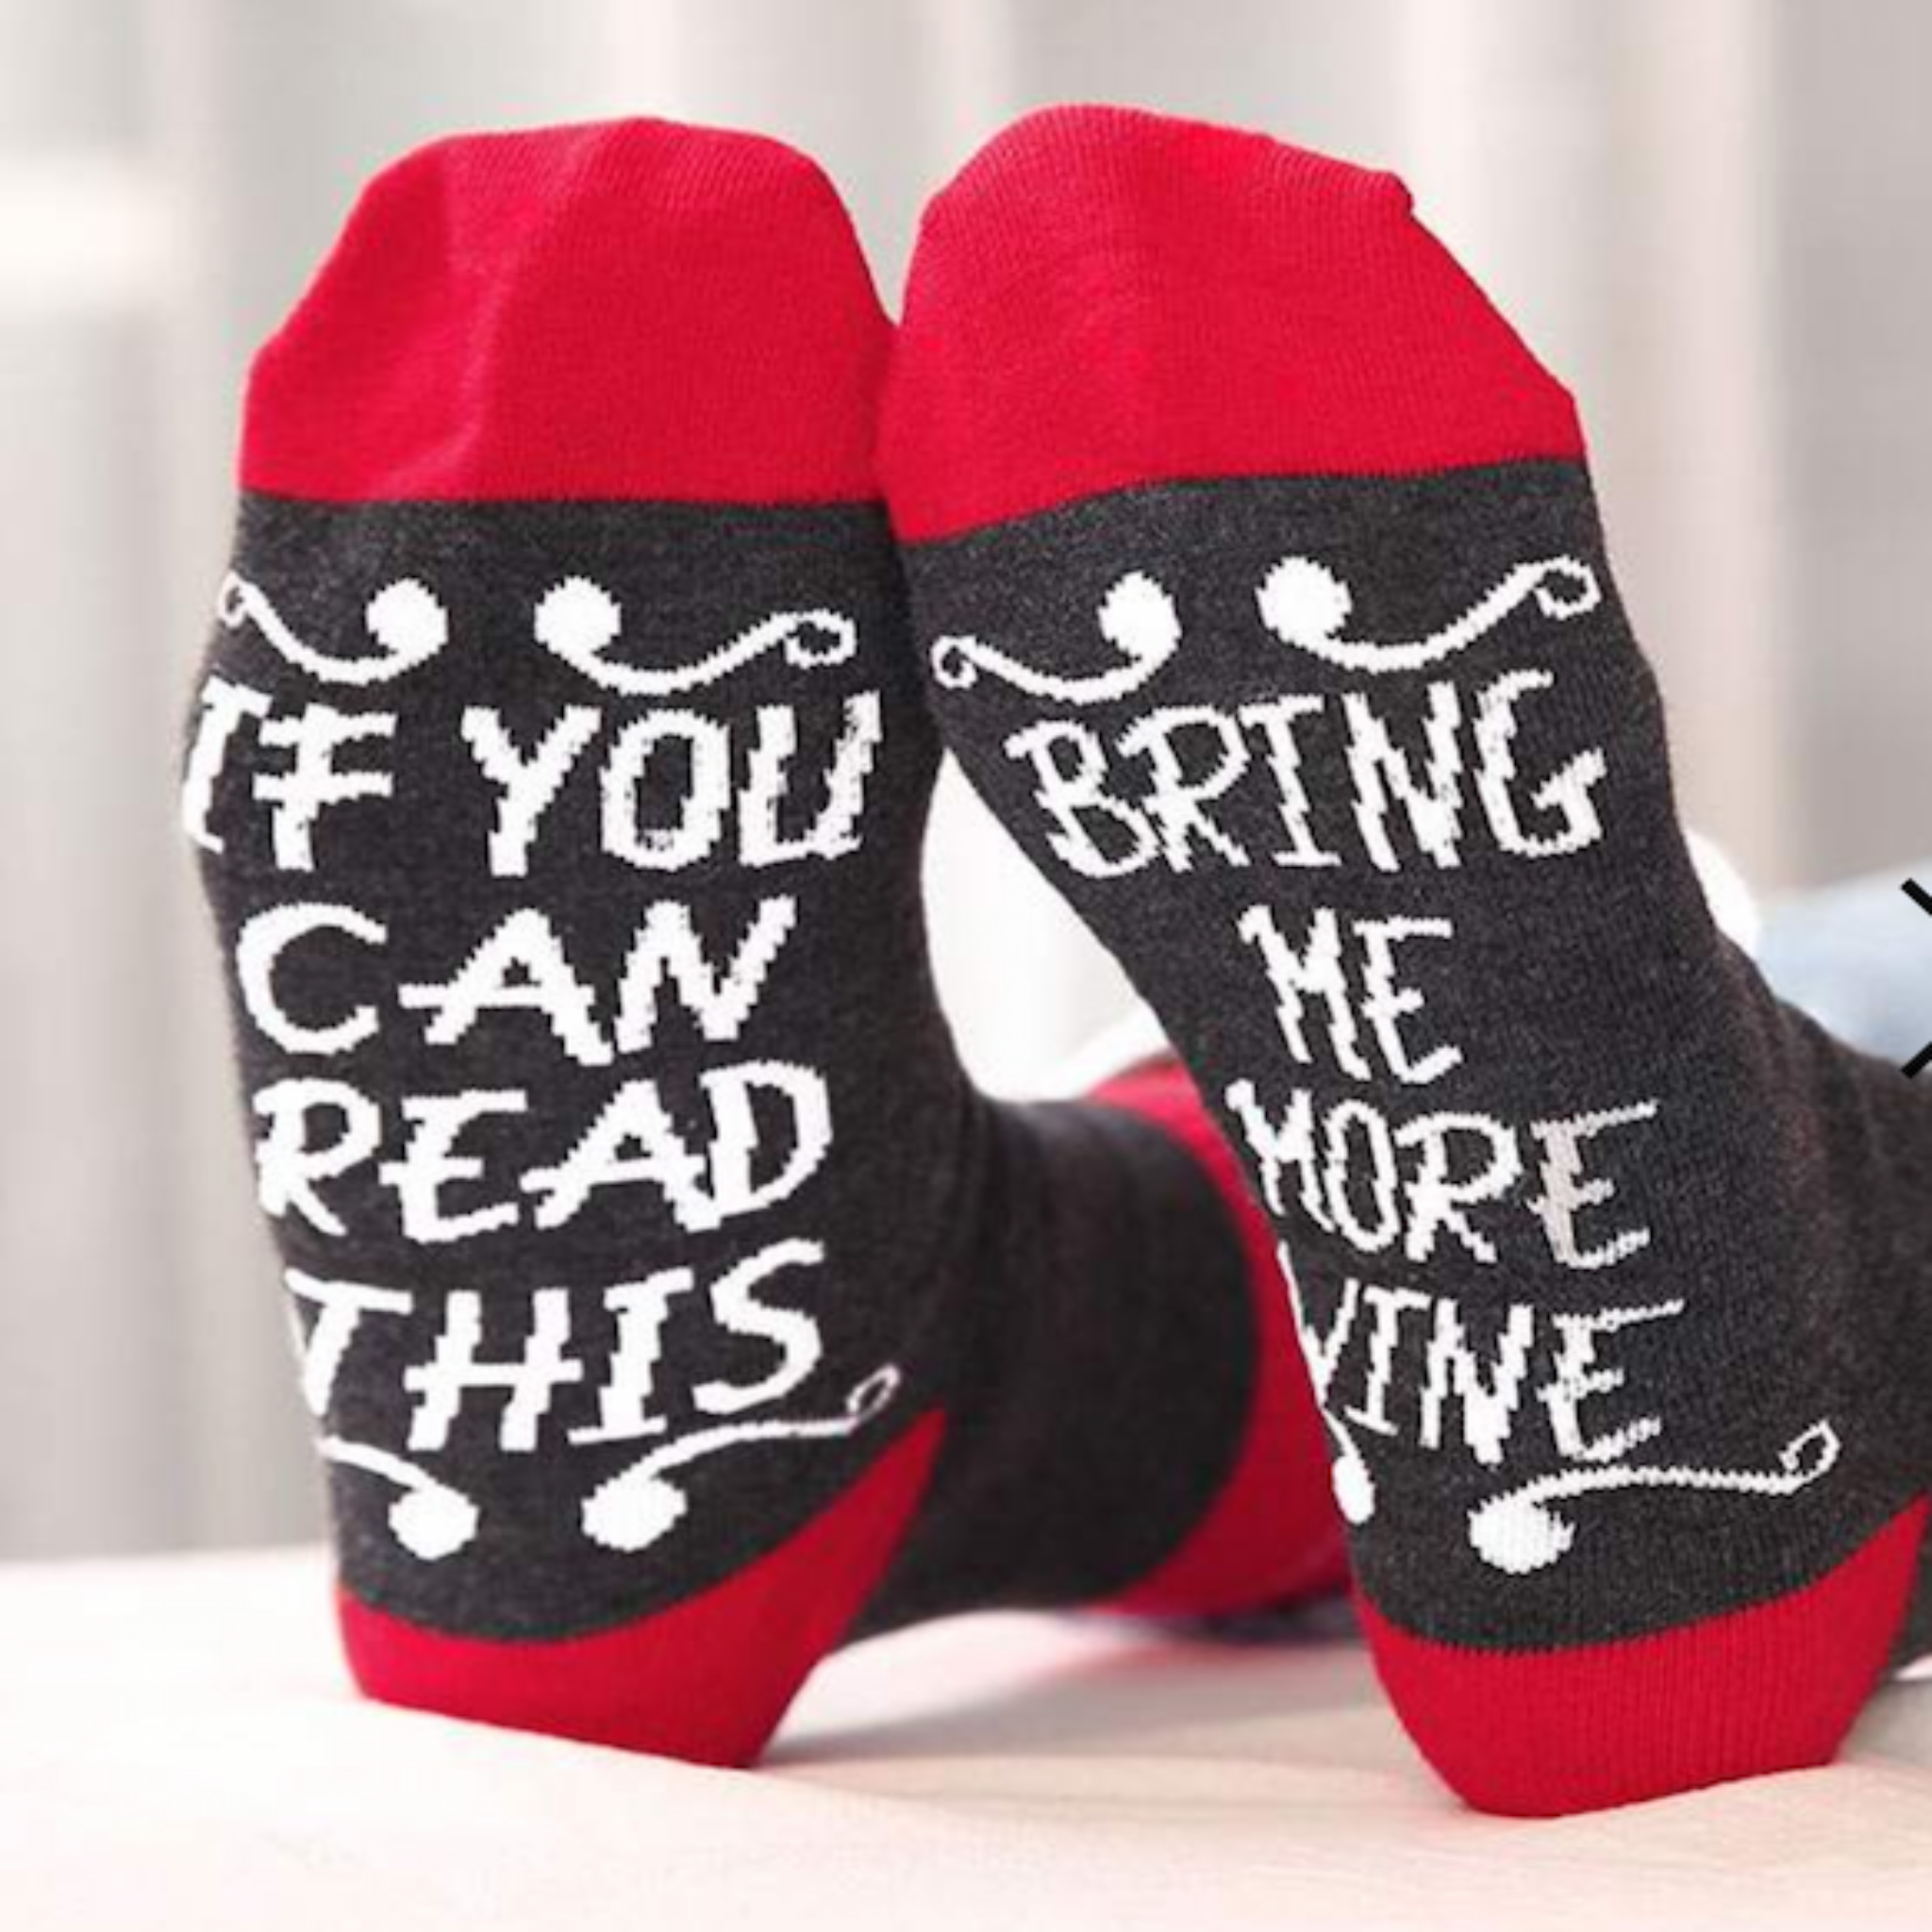 Socks w/ Sayings